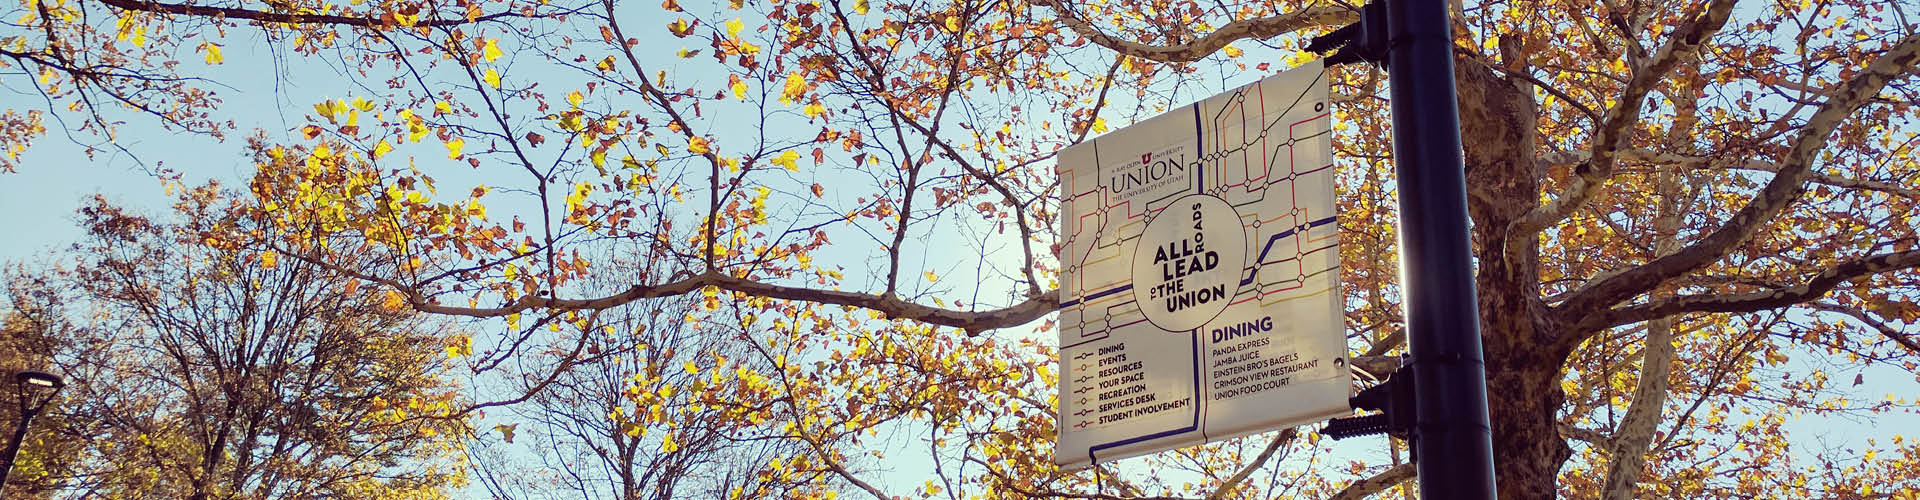 Reserve lamppost banners on campus!